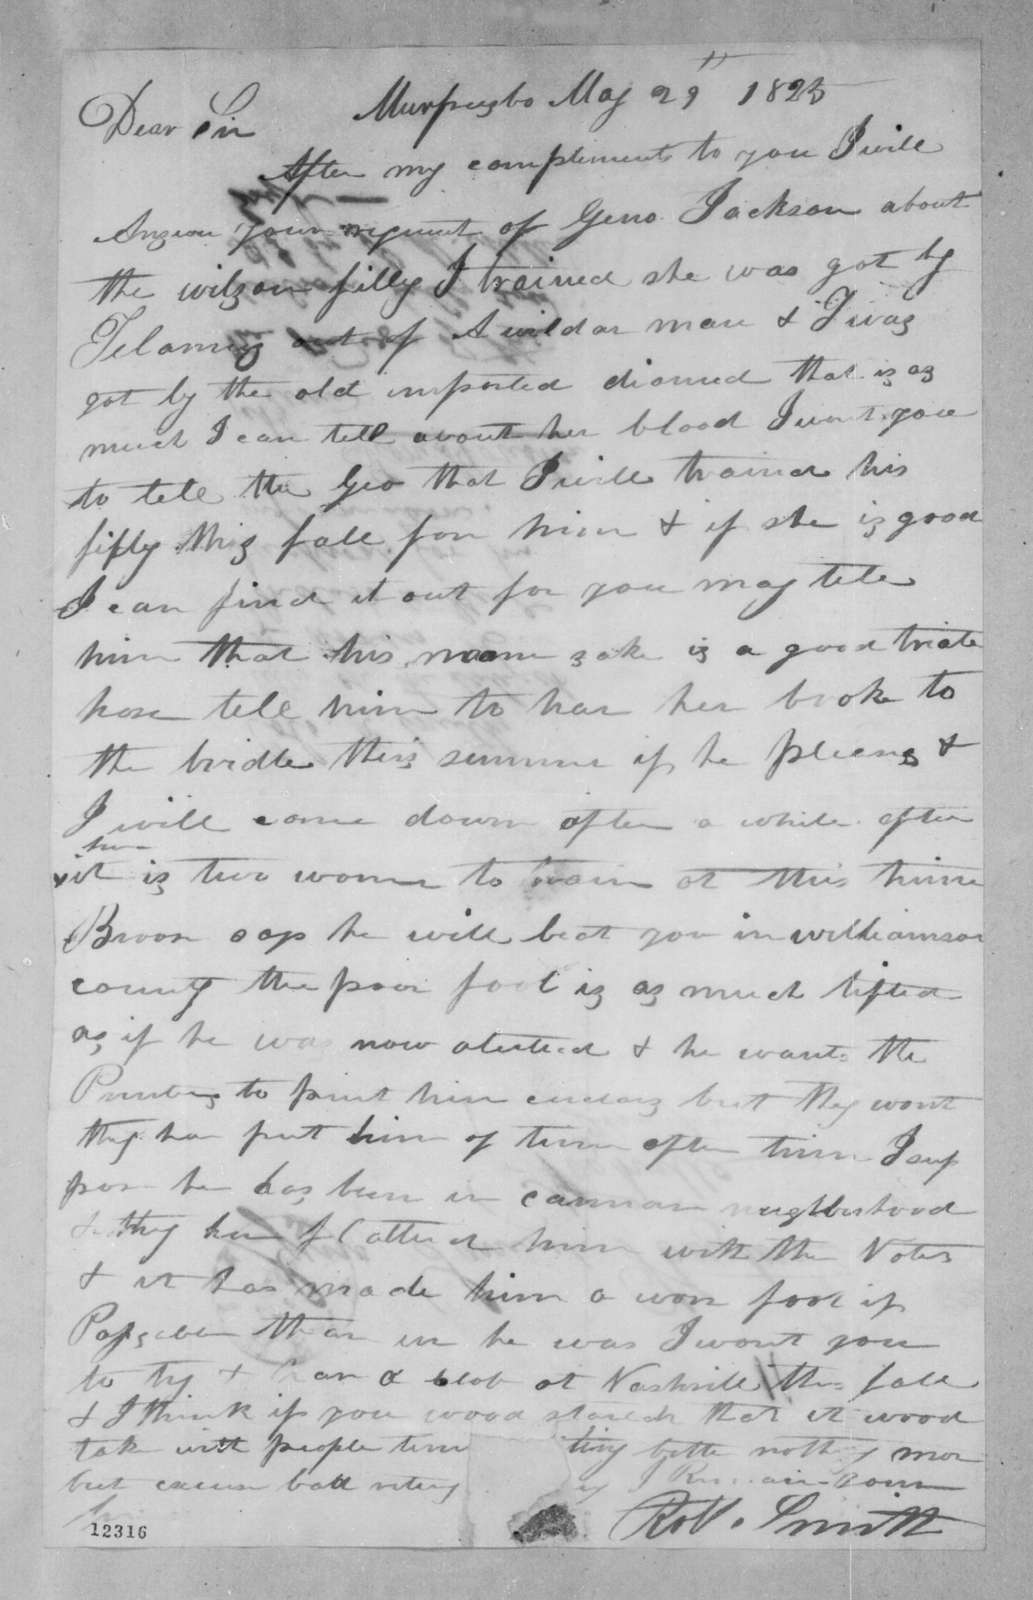 Robert Smith to Samuel Houston, May 29, 1825